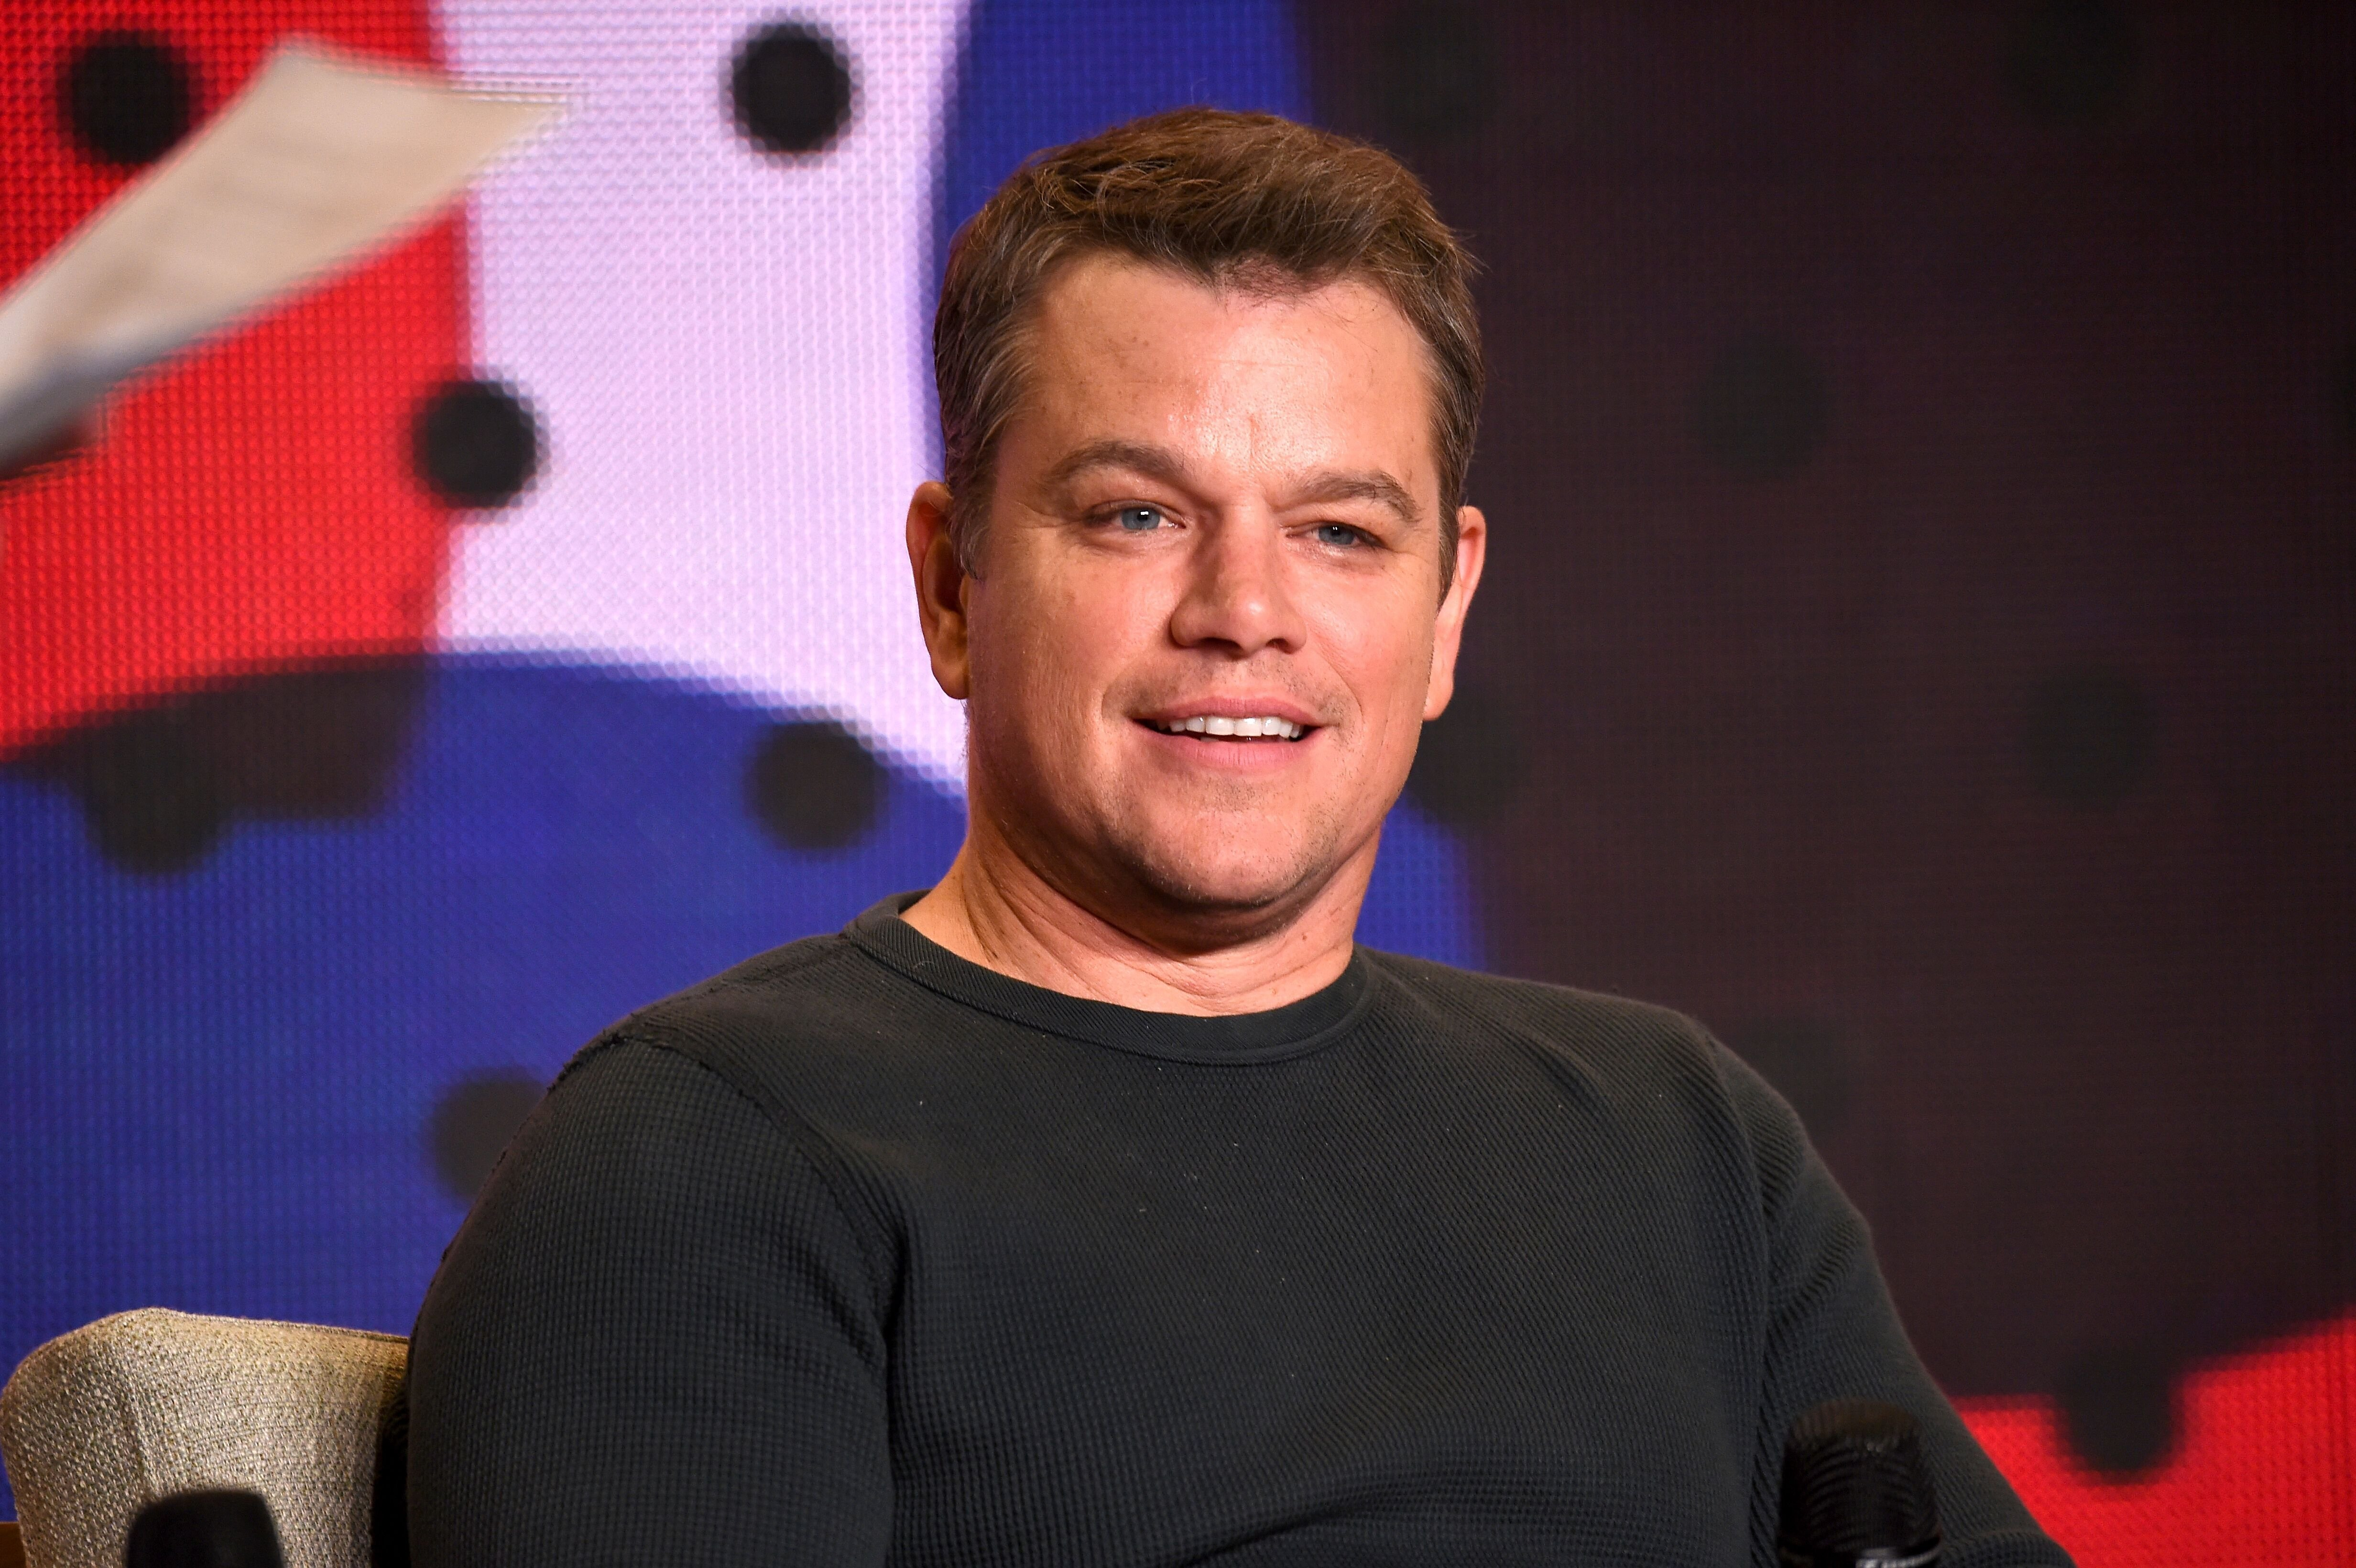 Matt Damon speaks during the 2017 Toronto International Film Festival. | Source: Getty Images